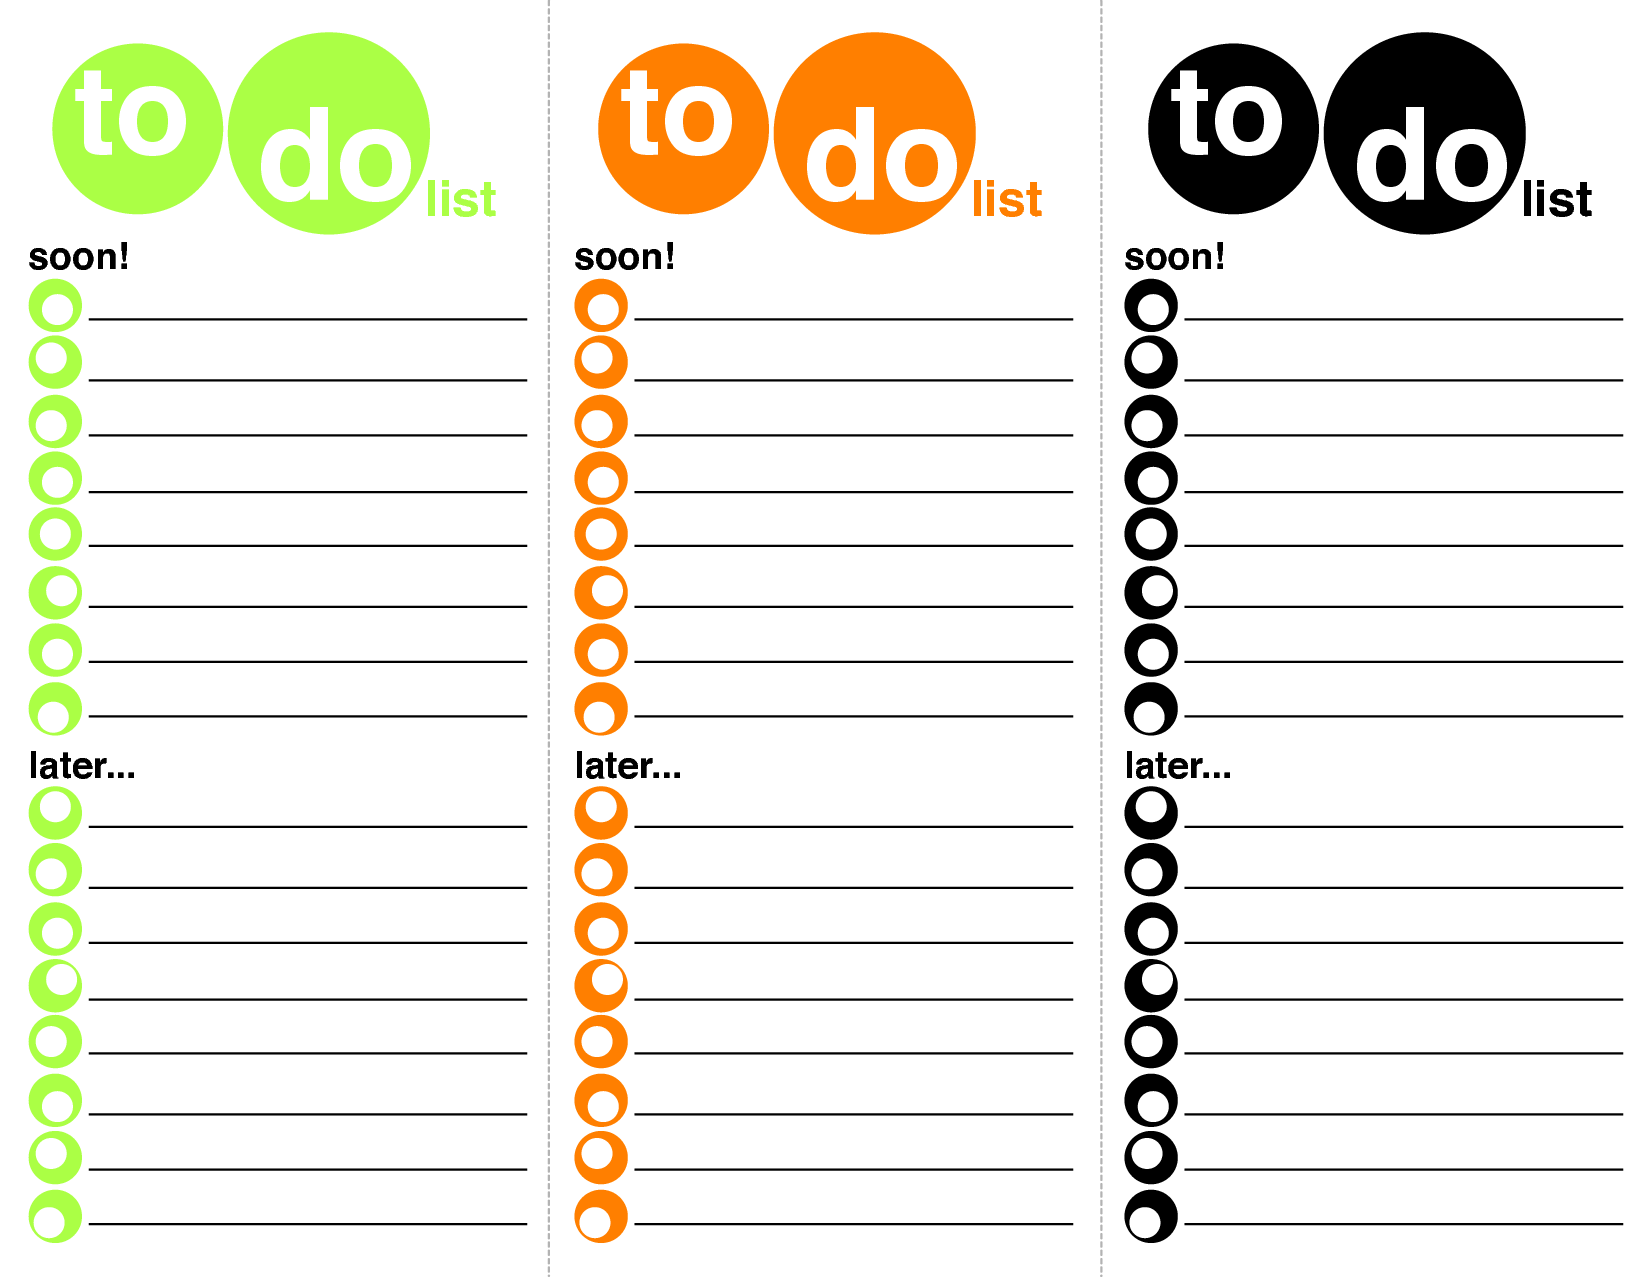 6 Best Images of To Do List Printable PDF Free Things to Do cute